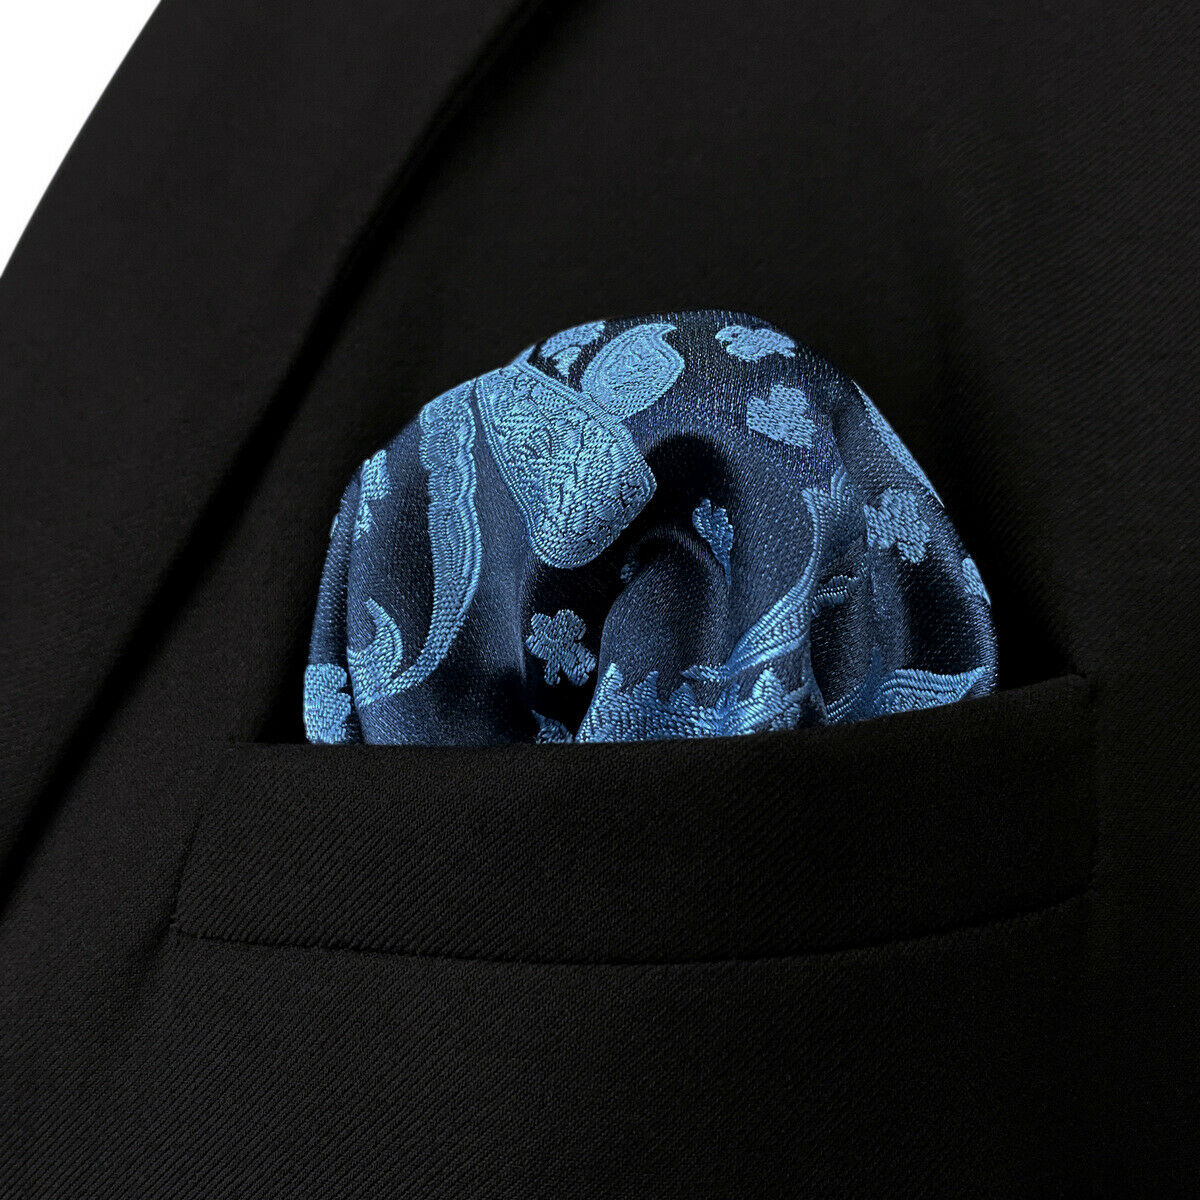 S&W SHLAX&WING Pocket Squares for Men Blue Steel Navy Paisley Silk